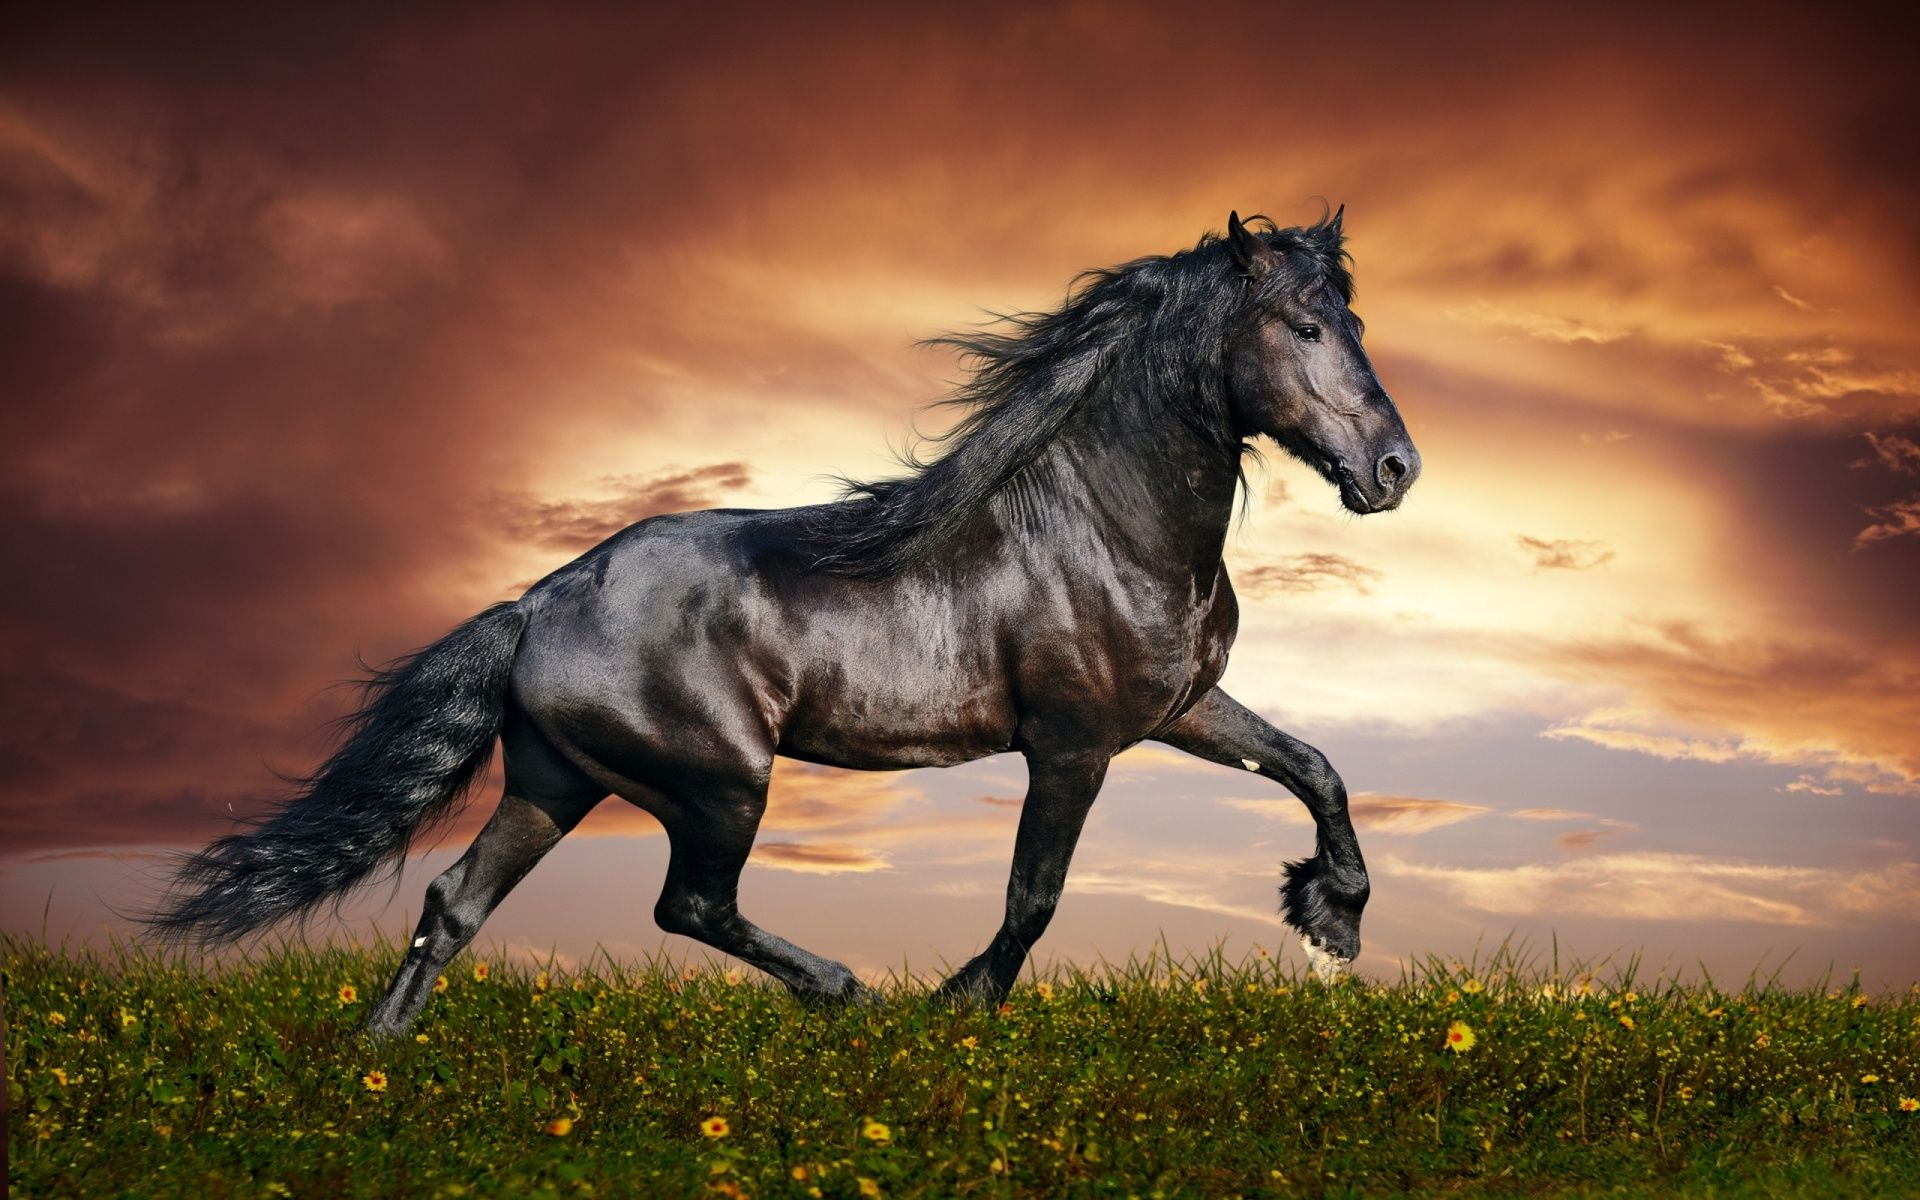 Must see Wallpaper Horse Dark Brown - acb0dd09b34cd653097681f692e819e2  Perfect Image Reference_469628.jpg